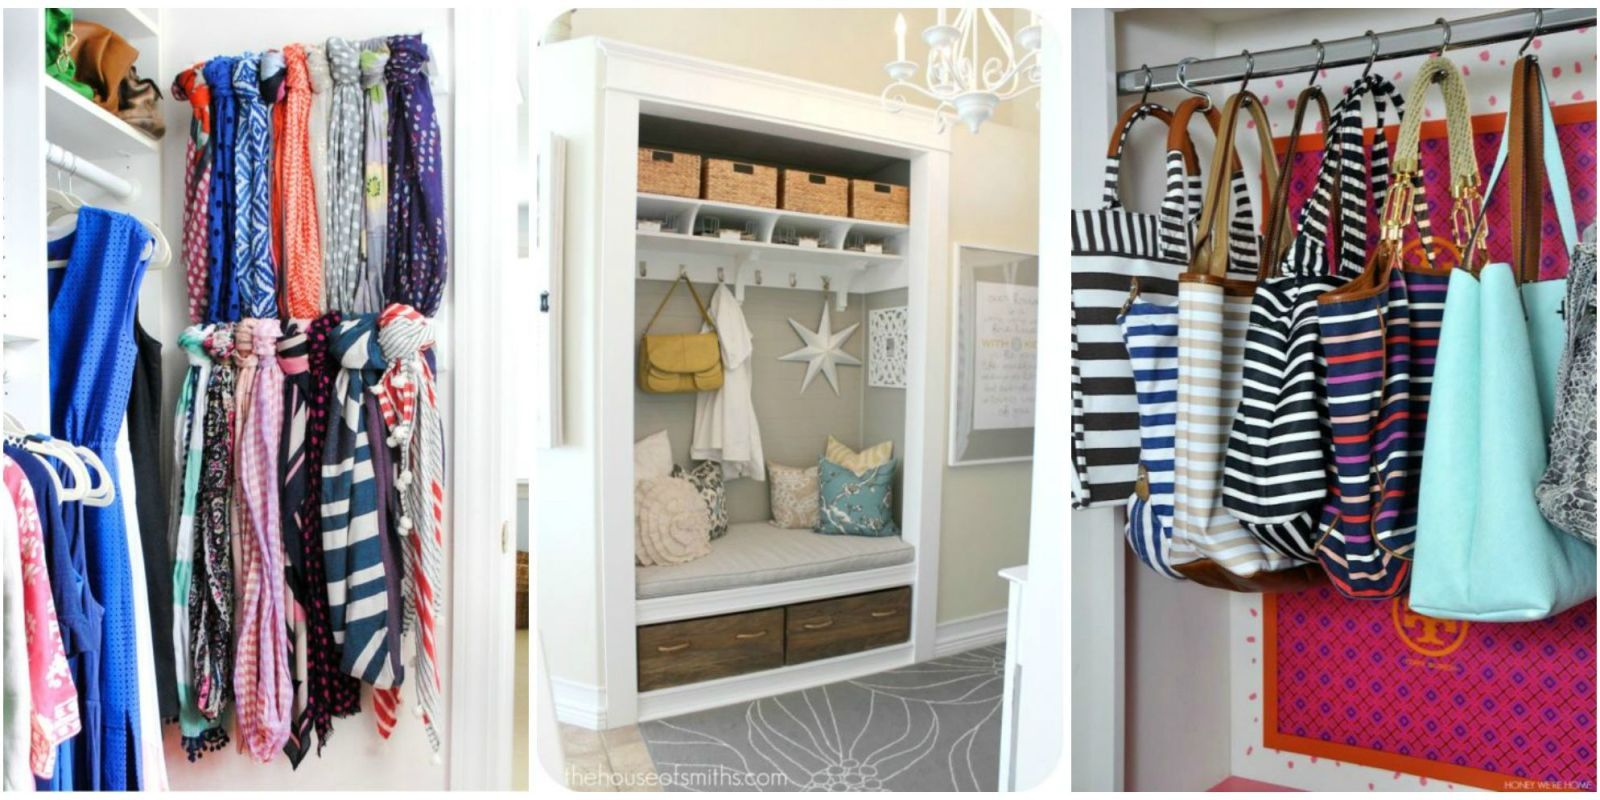 Superieur These Tips Will Give You The Most Organized Closet Ever.